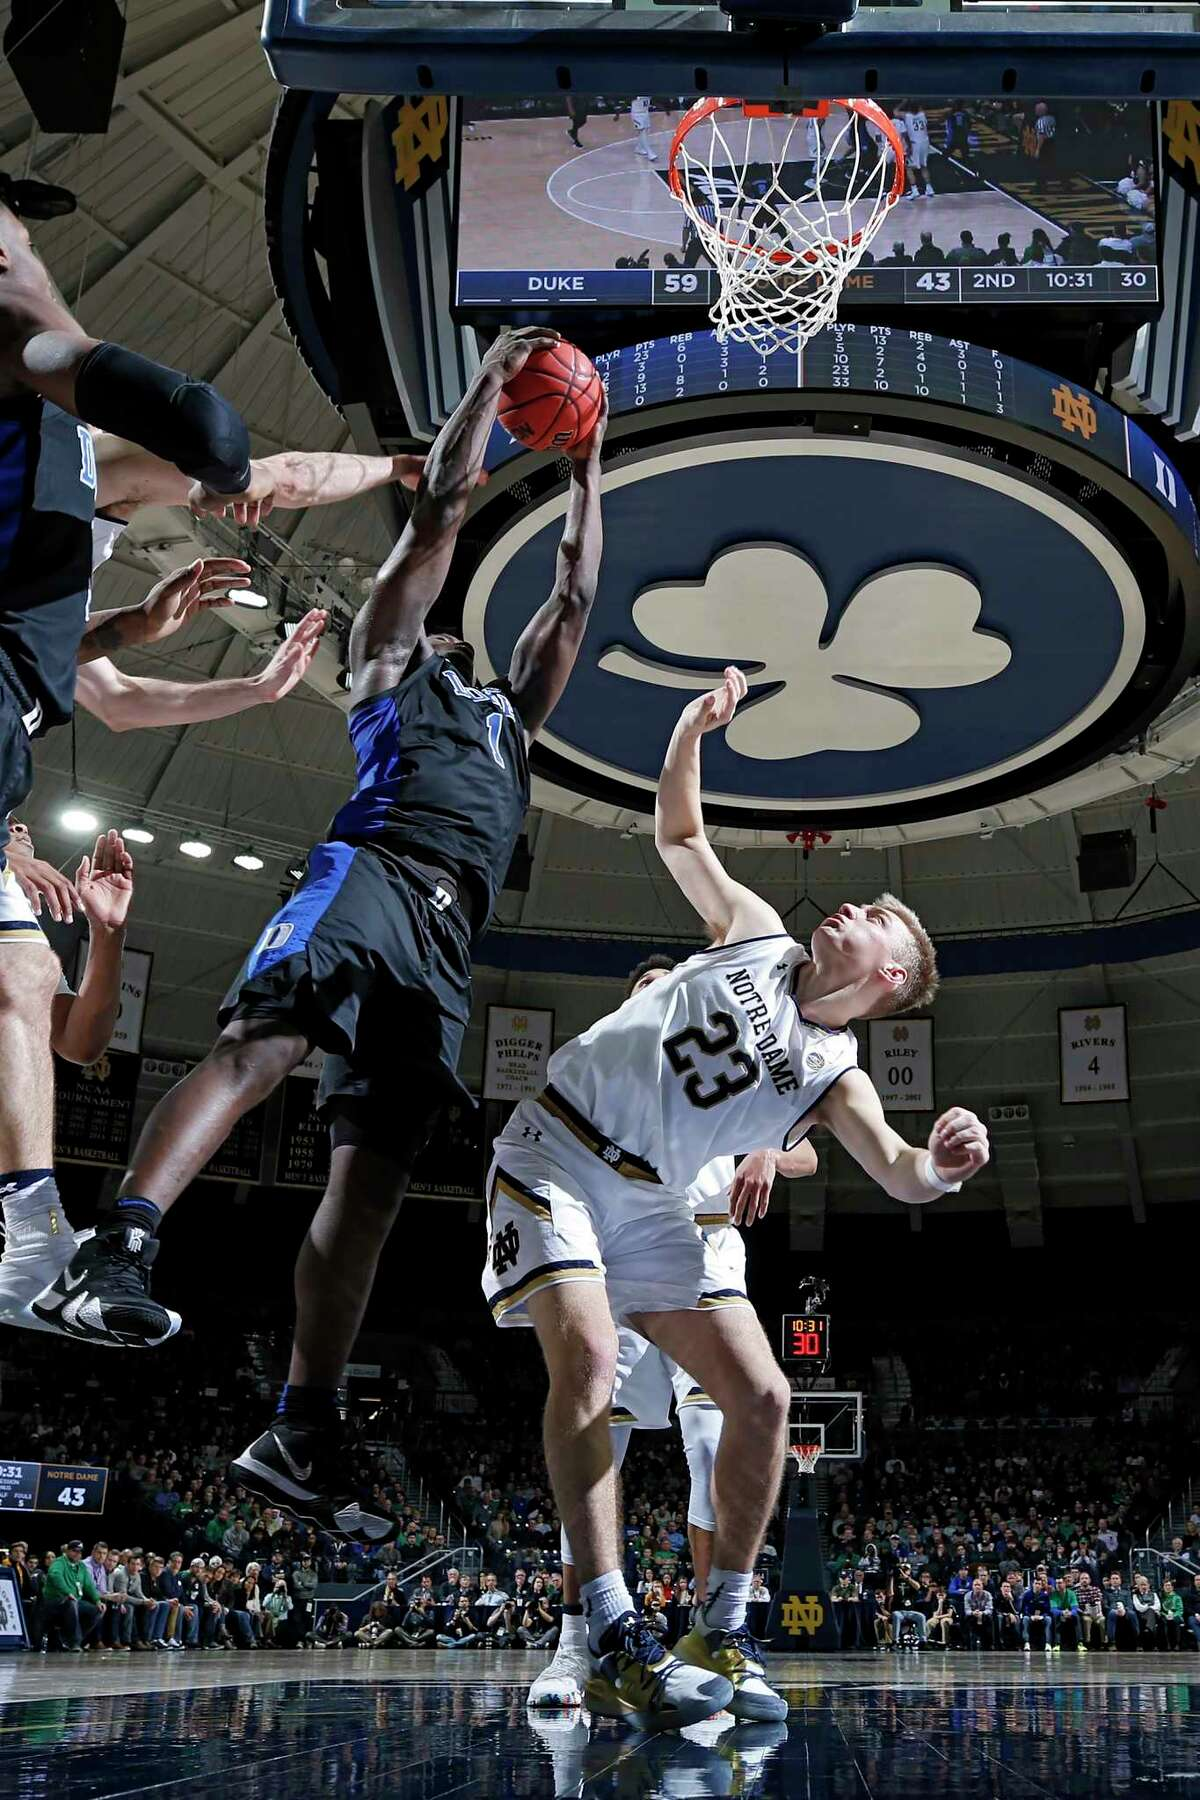 SOUTH BEND, IN - JANUARY 28: Zion Williamson #1 of the Duke Blue Devils rebounds over Dane Goodwin #23 of the Notre Dame Fighting Irish in the second half of the game at Purcell Pavilion on January 28, 2019 in South Bend, Indiana. Duke won 83-61. (Photo by Joe Robbins/Getty Images)